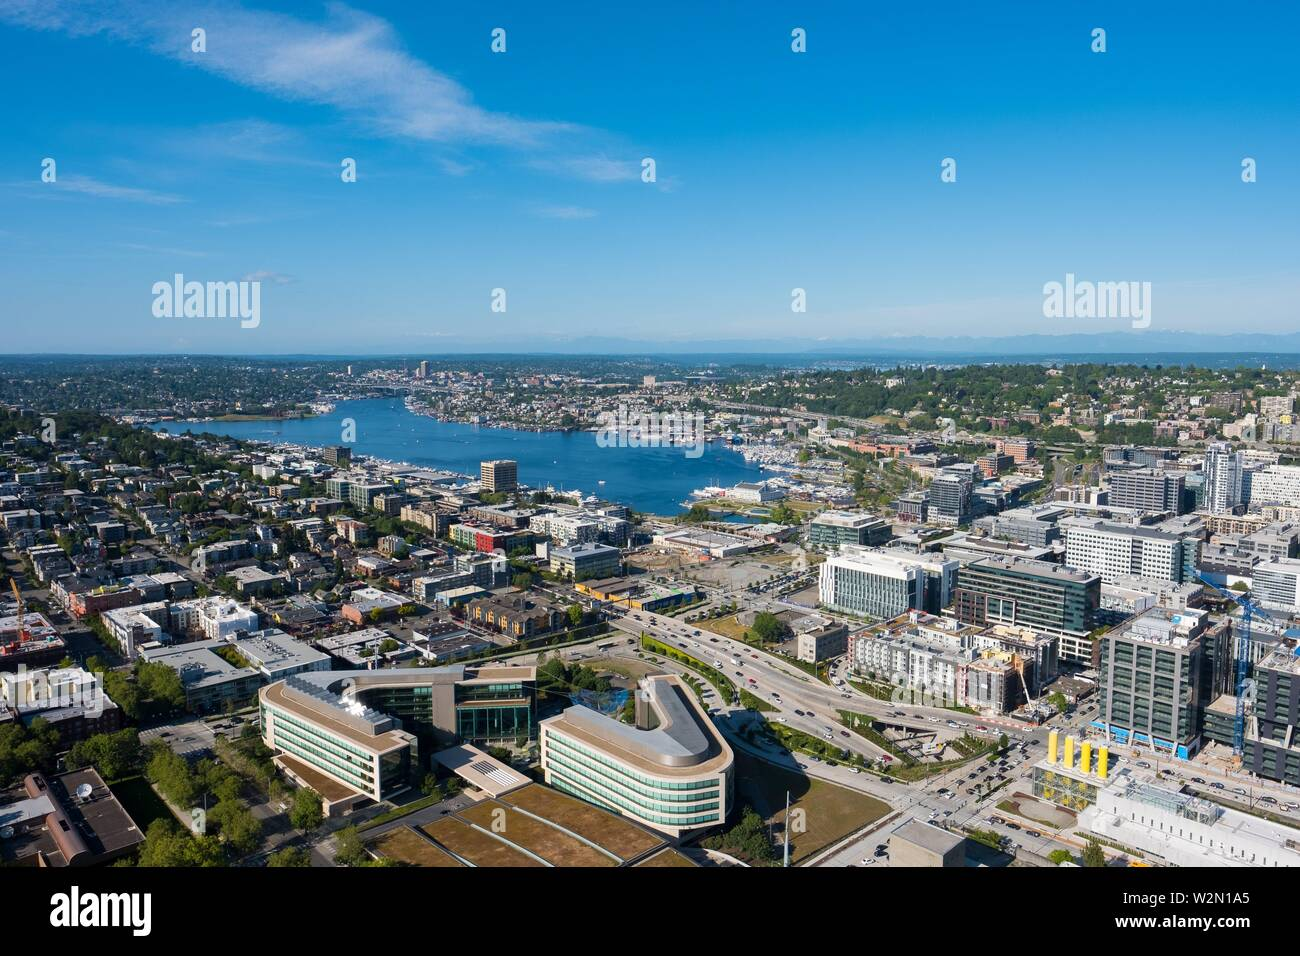 Seattle, WA - June 4, 2019: View of Lake Union during a Spring day as seen from the top of the Space Needle facing North. - Stock Image